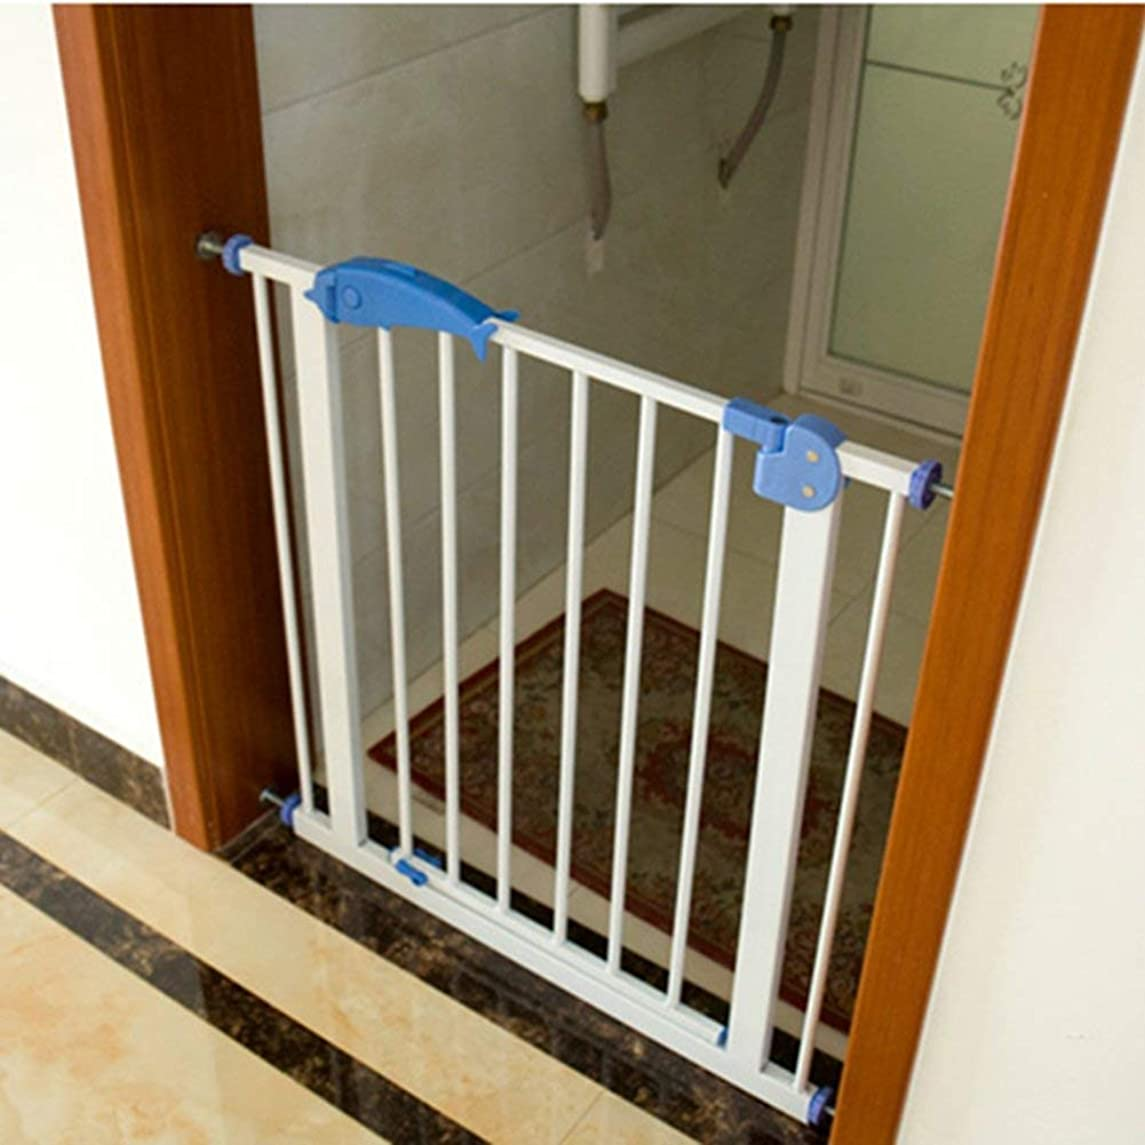 Pet Isolation Door Child Safety Gate Baby Stair Barrier Kitchen Fence Baby Railings Top of Stairs Baby Gate